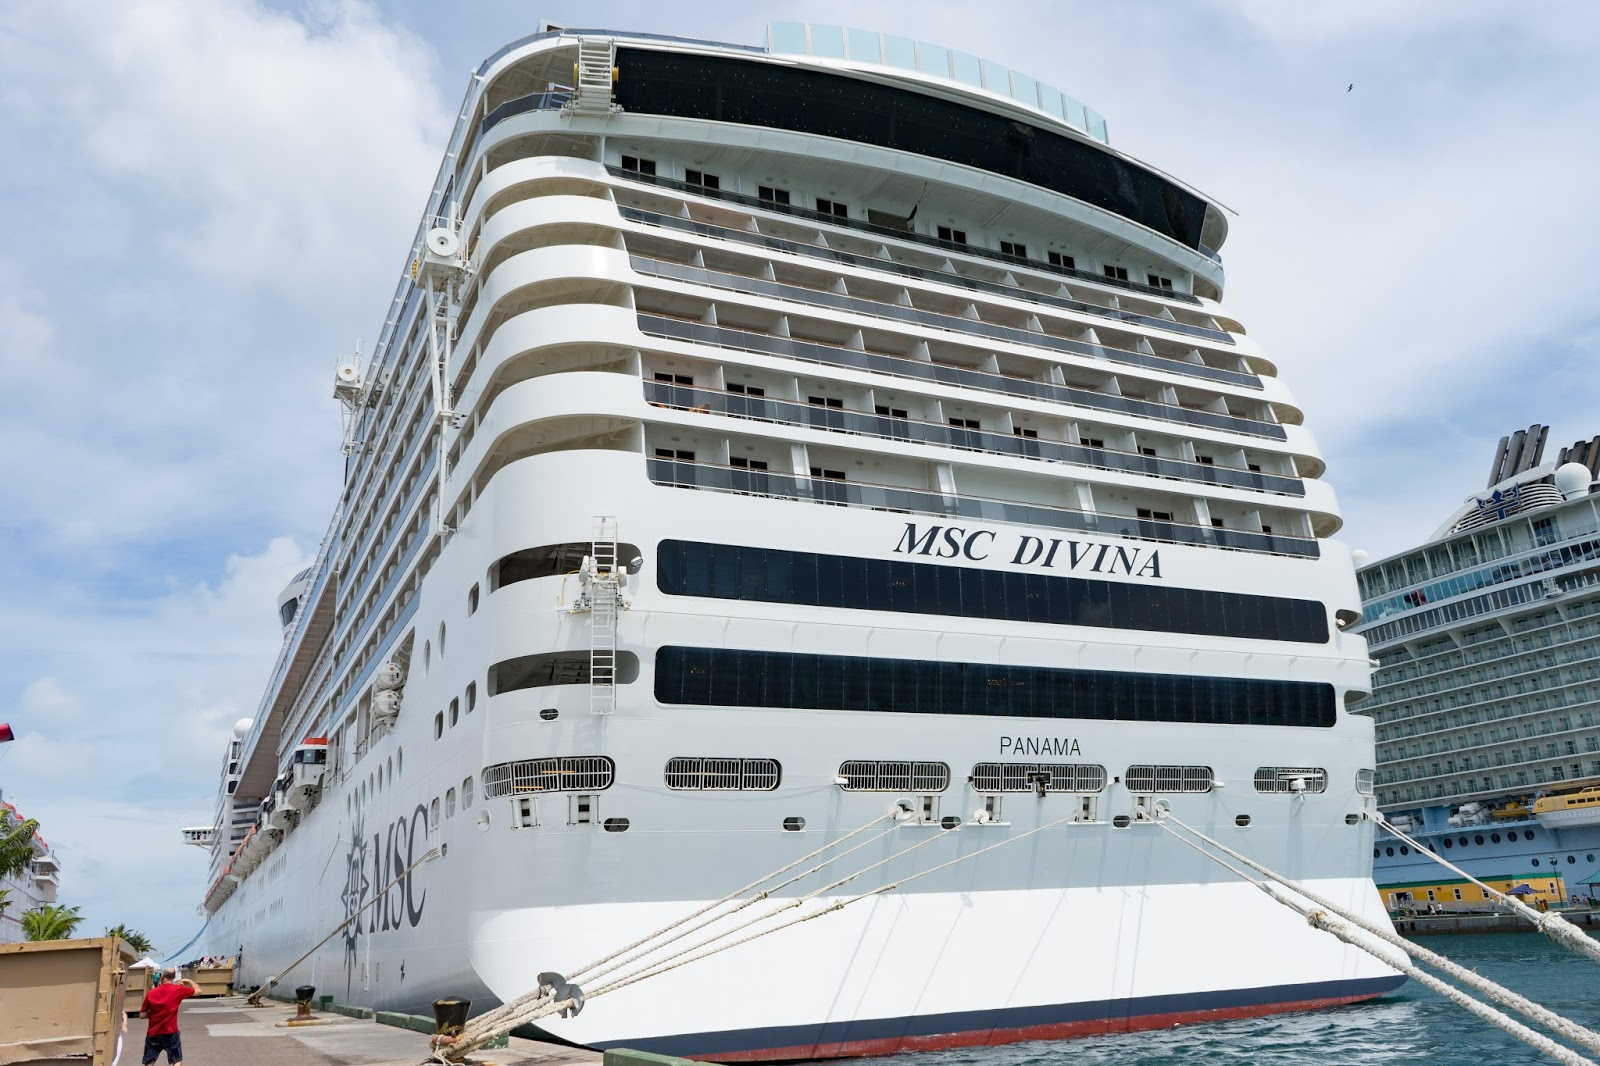 The Cheerful Cruiser Ten Tips And Truths About The MSC Divina - Msc divina cruise ship